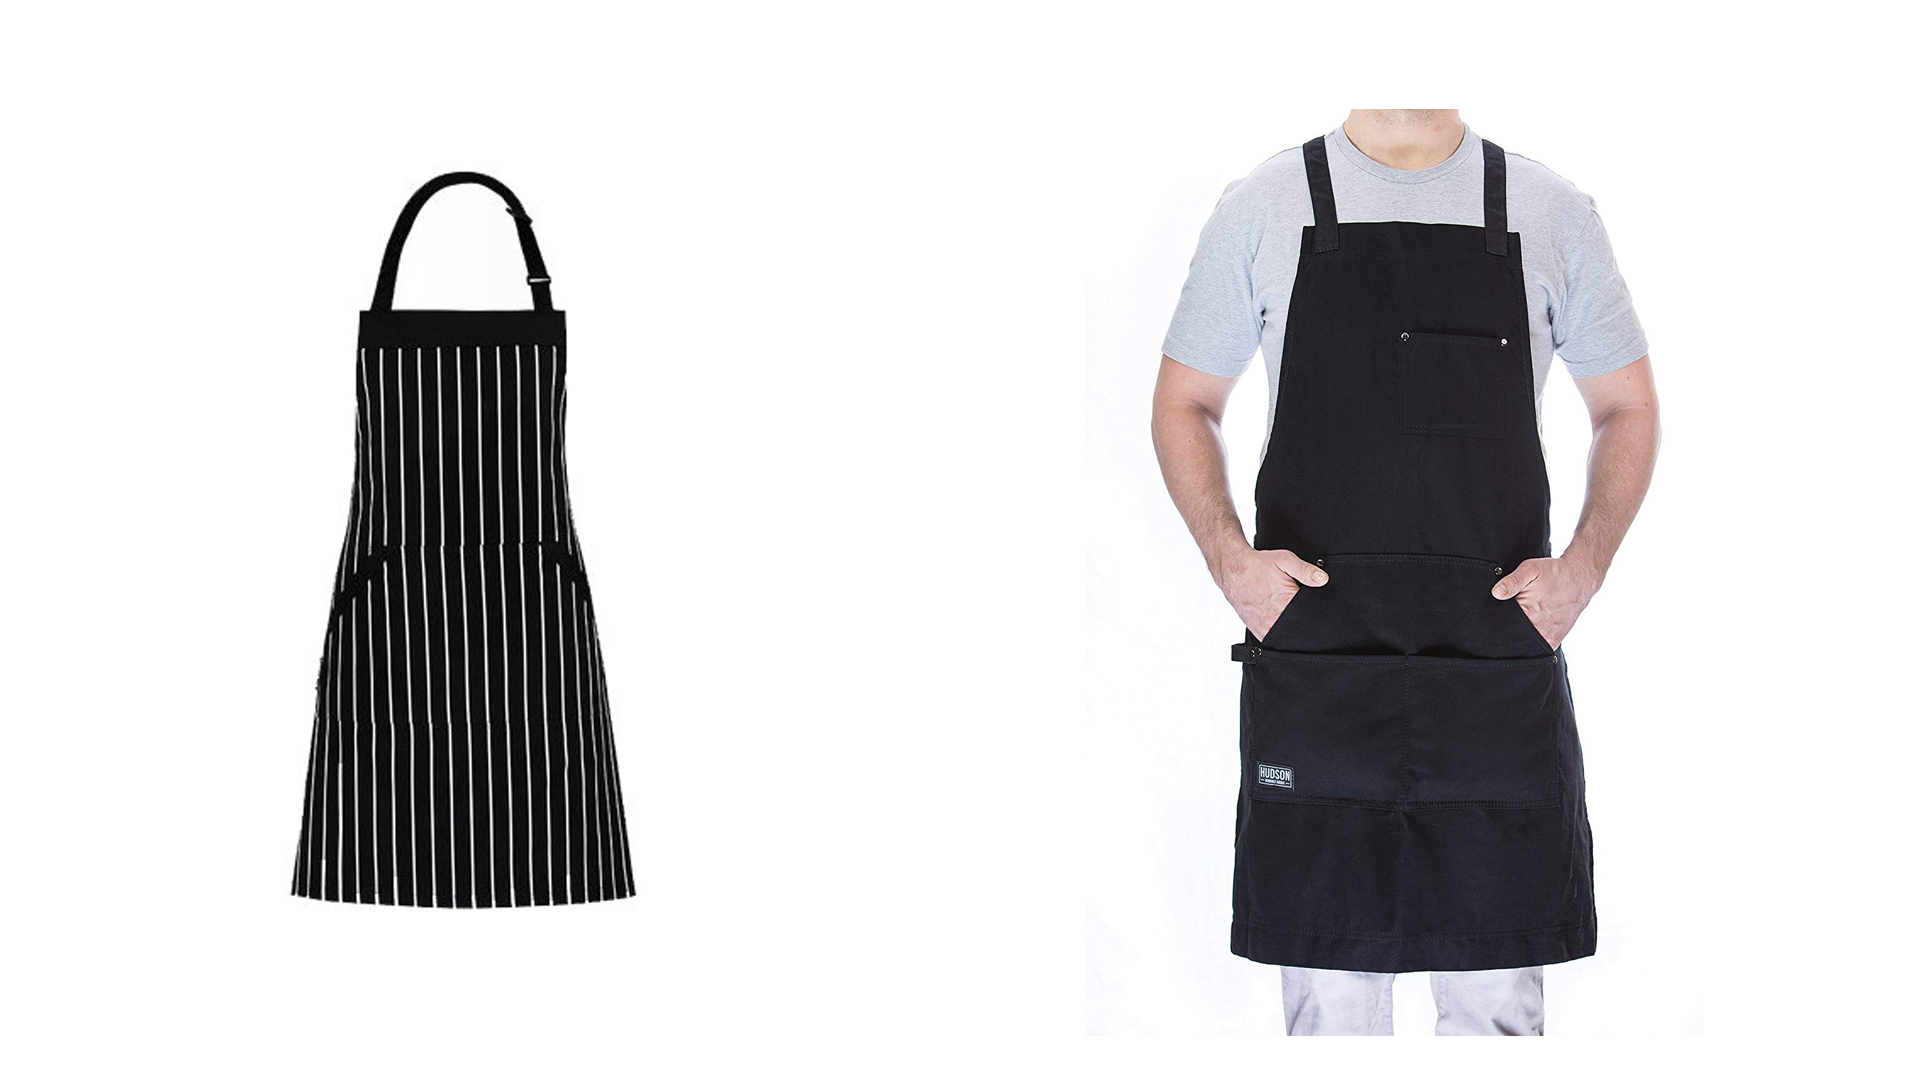 Two black aprons